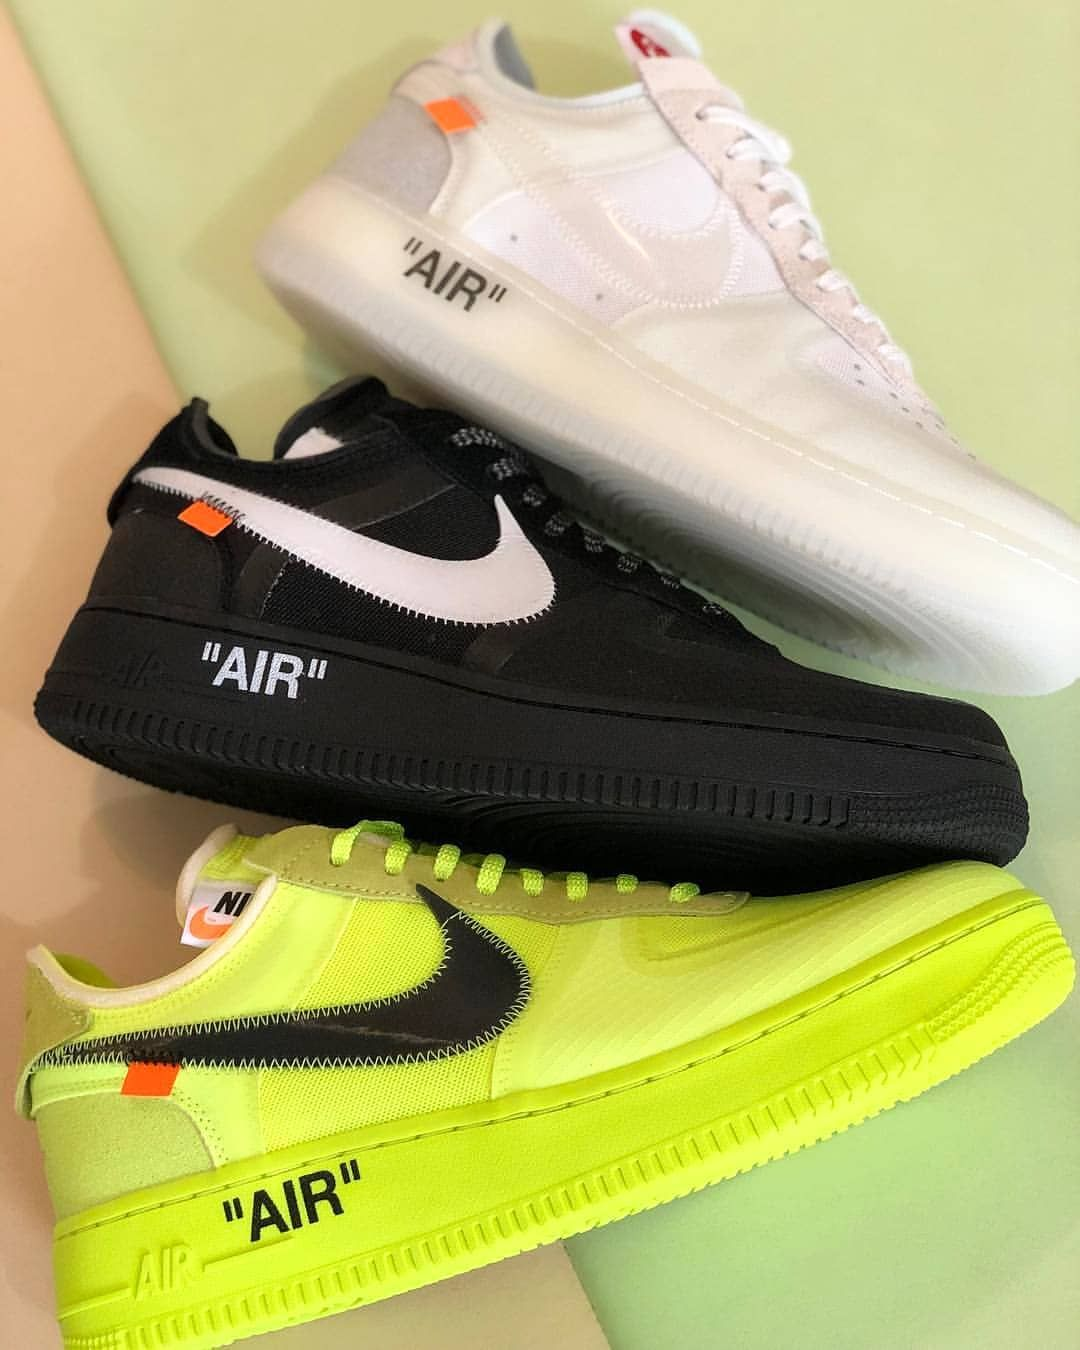 check out f02b6 a8f91 Nike air (off White) 30 days warranty only 259.99 we accept card we serve